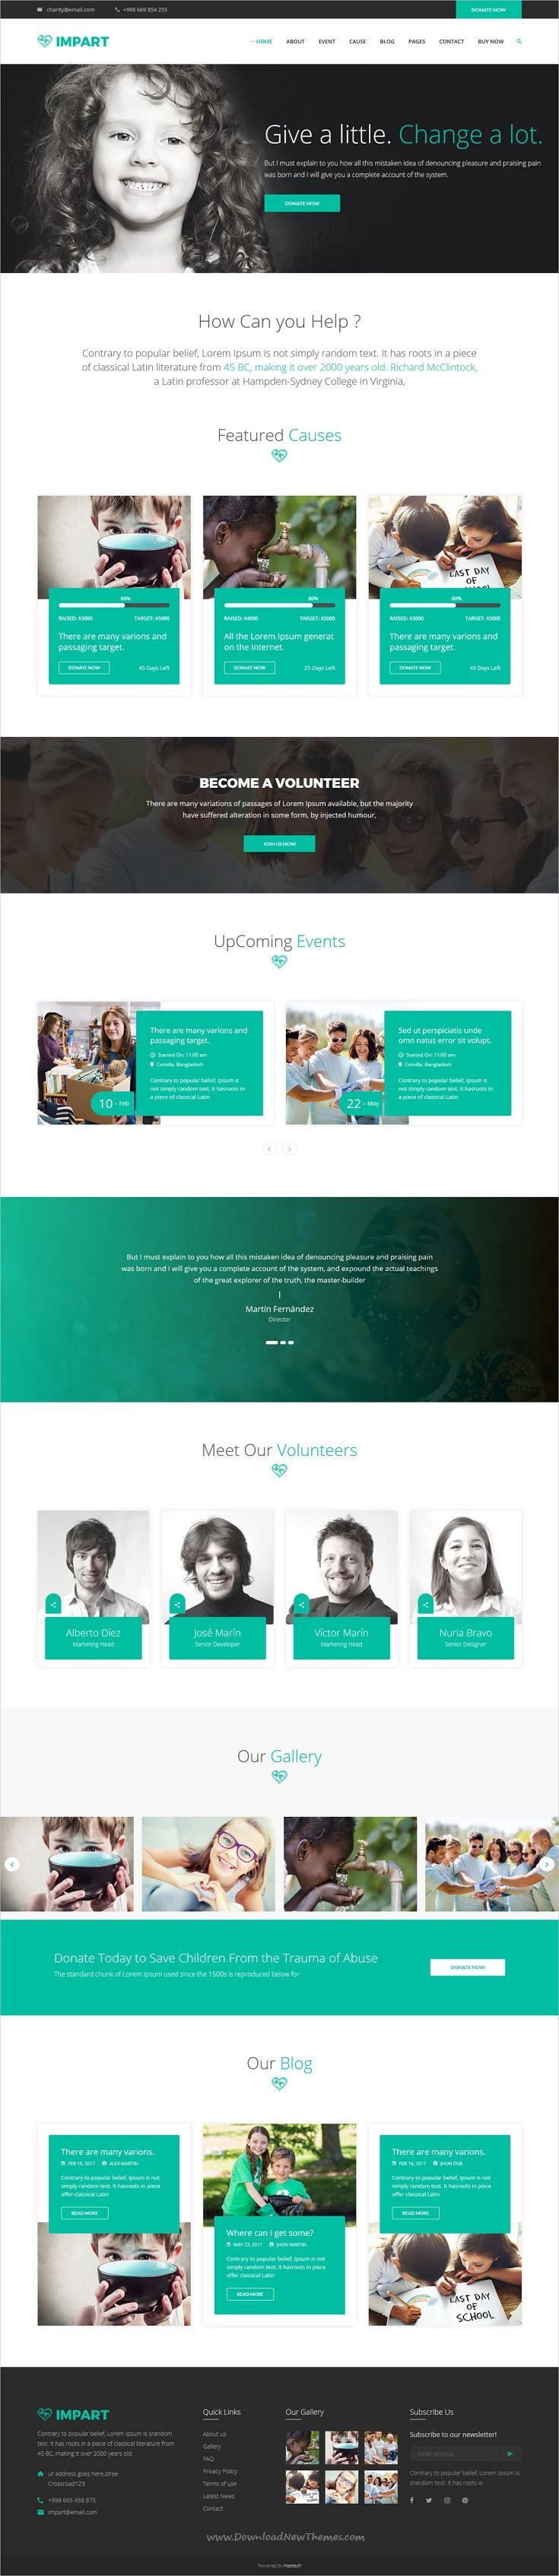 Impart is clean and modern design 2in1 responsive #HTML template for #charity and fundraising website download now..